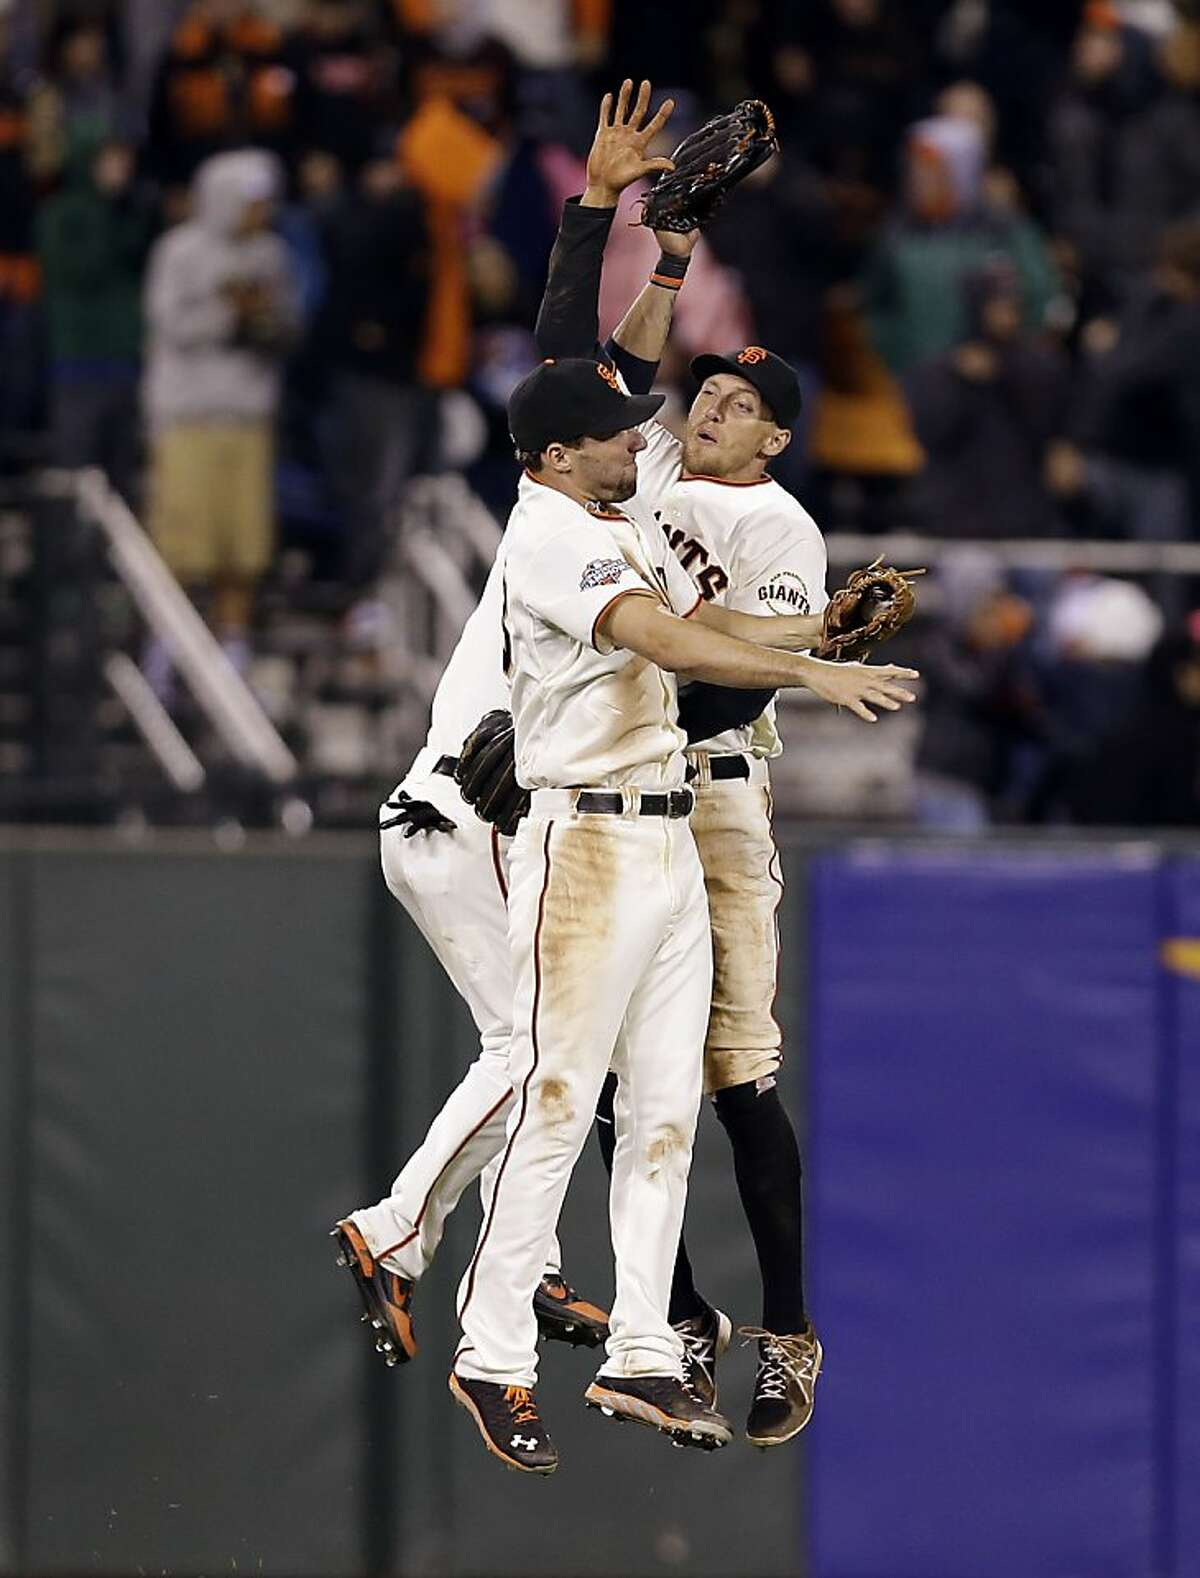 San Francisco Giants' Jeff Francoeur, left, and Hunter Pence celebrate a 4-2 win over the Milwaukee Brewers during a baseball game on Monday, Aug. 5, 2013, in San Francisco. (AP Photo/Marcio Jose Sanchez)